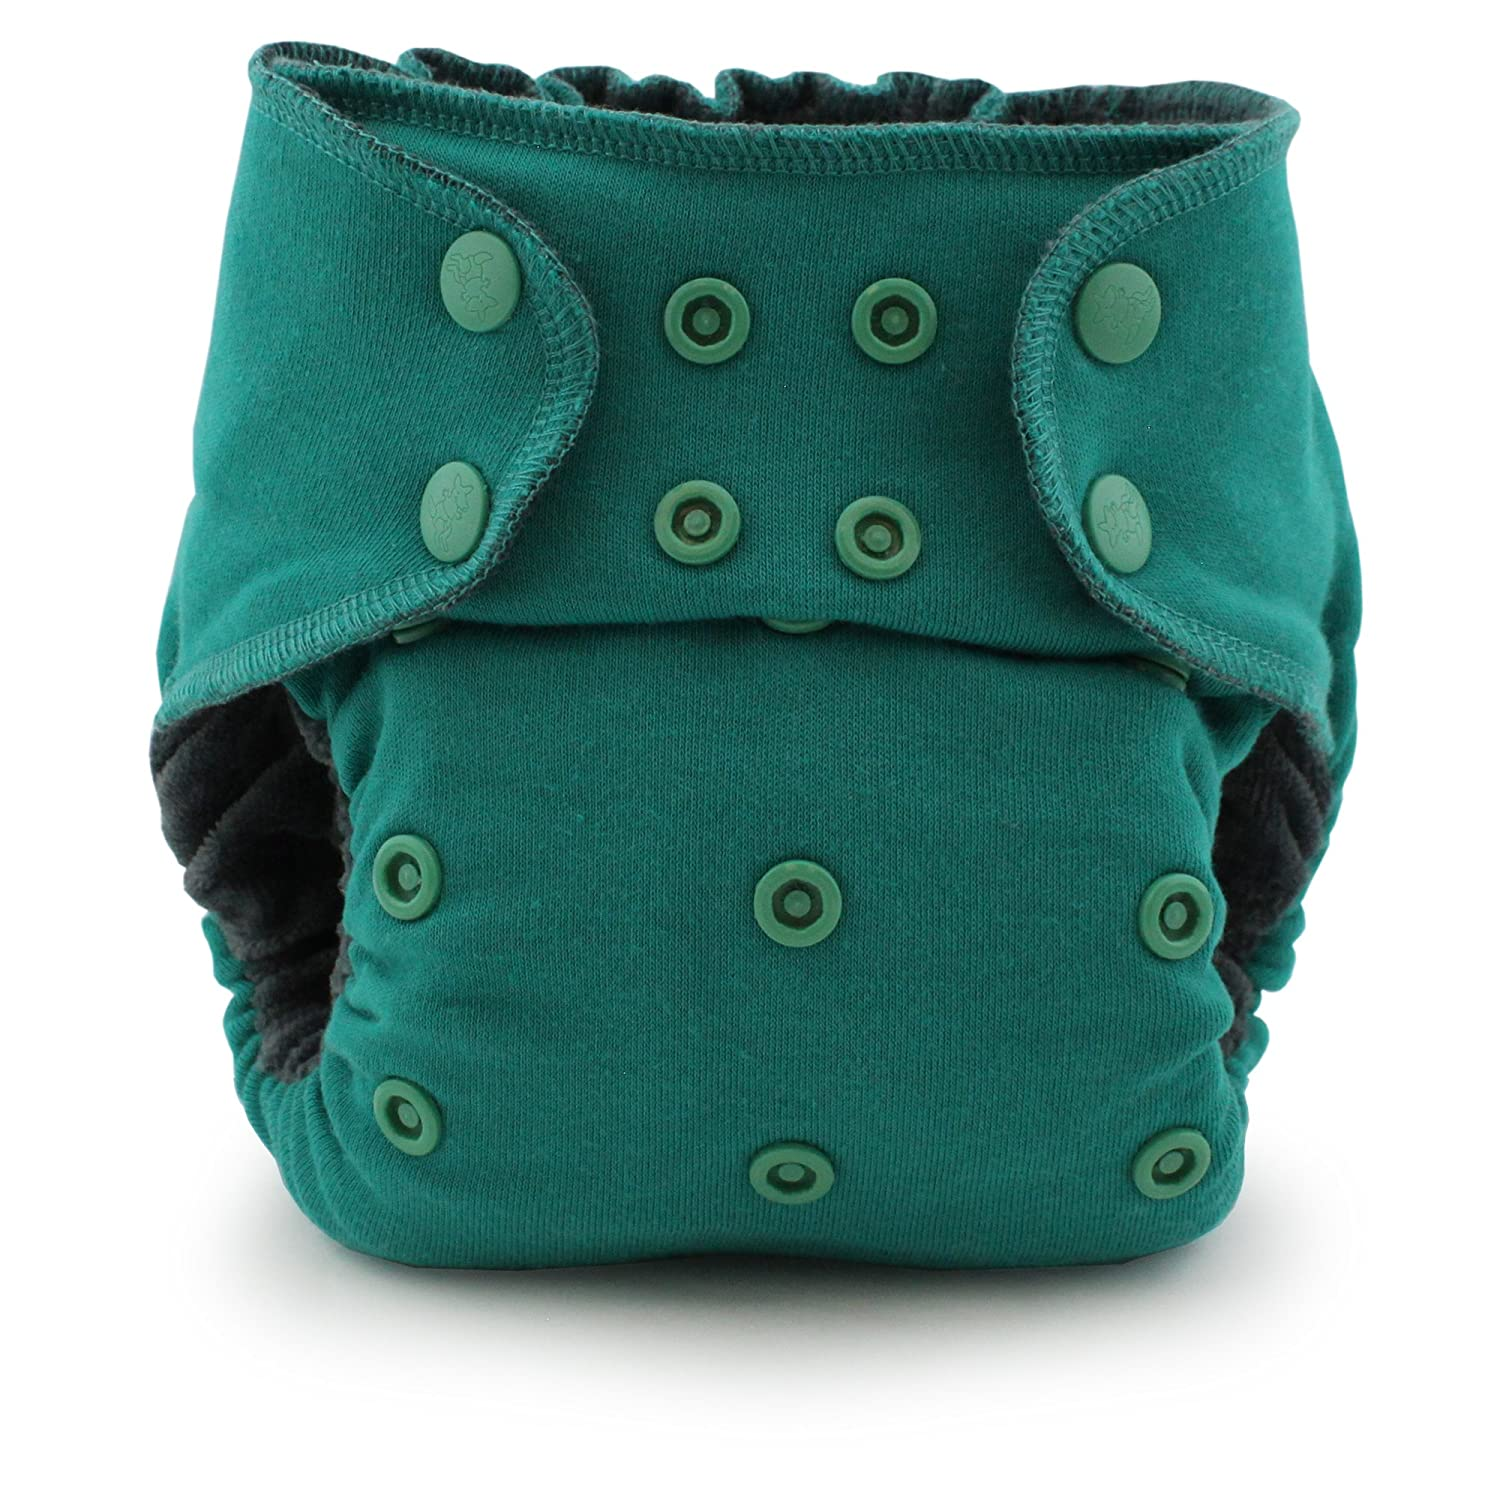 Kanga Care Ecoposh On-Balance Volume One-Size Pocket Fitted Cloth Diaper, Atlantis KEFITTSOS-S301